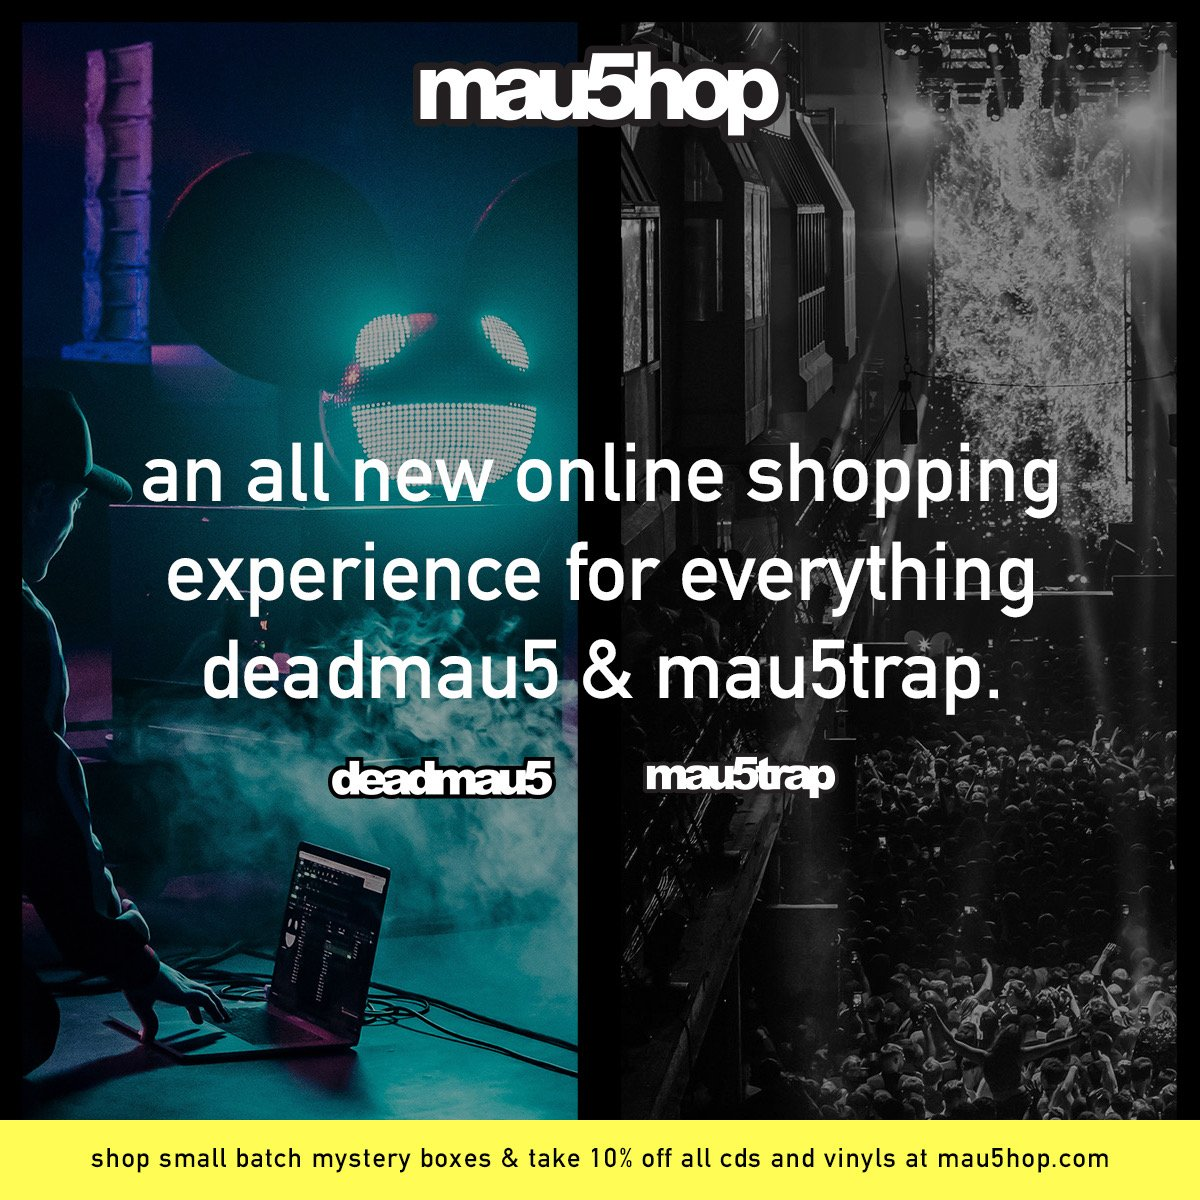 RT @mau5trap: now entering... the new mau5hop. stay tuned for moar merch coming ????  ???? https://t.co/AiFHdThyxp https://t.co/L9IRRqaulF